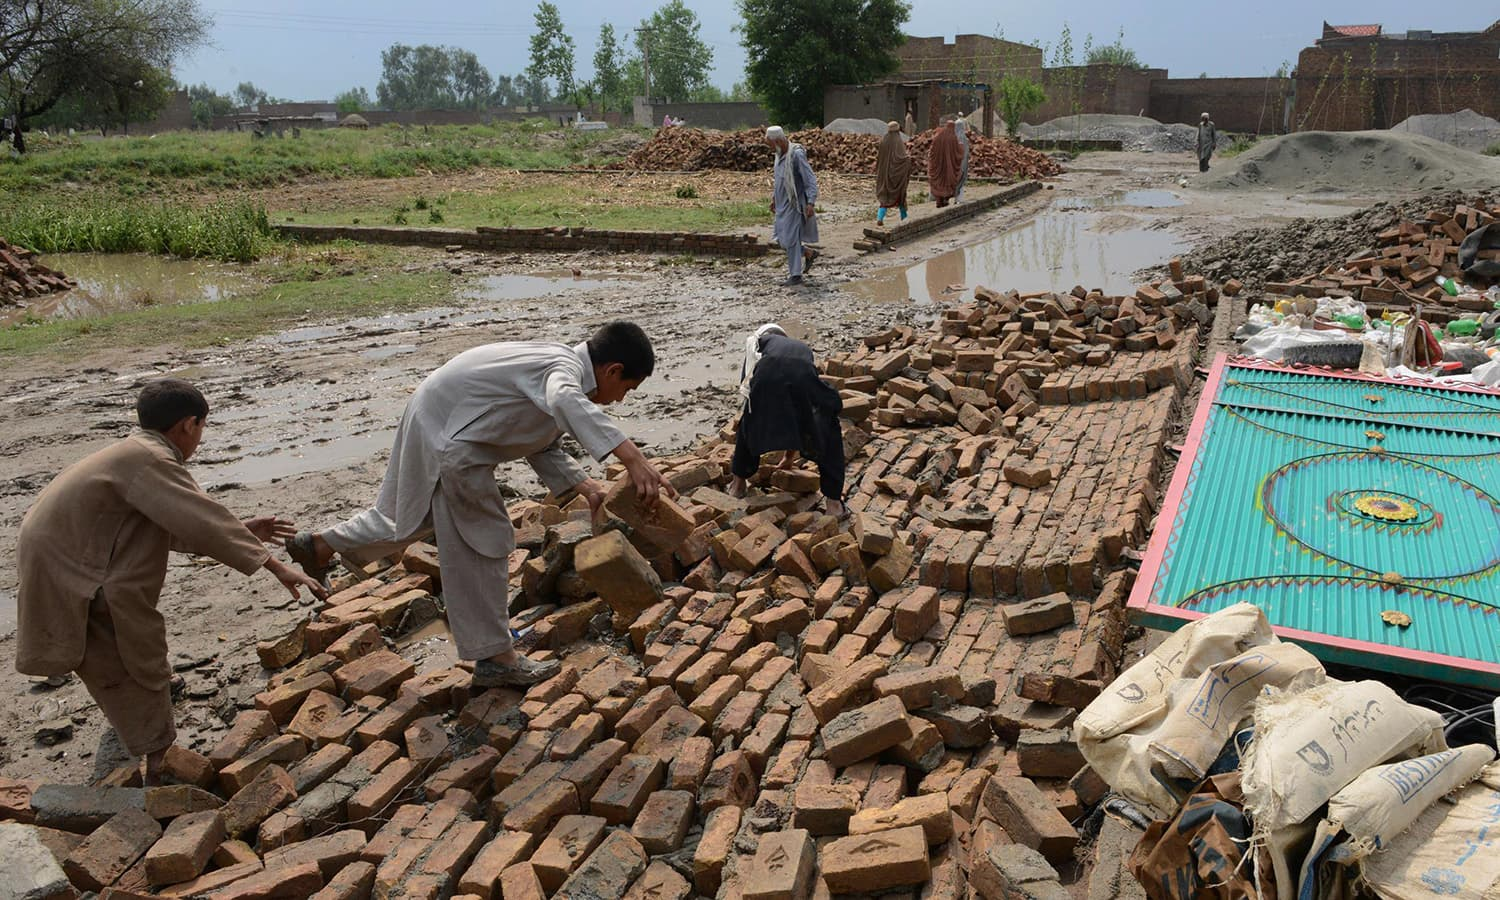 Residents collect bricks after their house collapsed following heavy rain and winds in Peshawar on April 27, 2015. — AFP